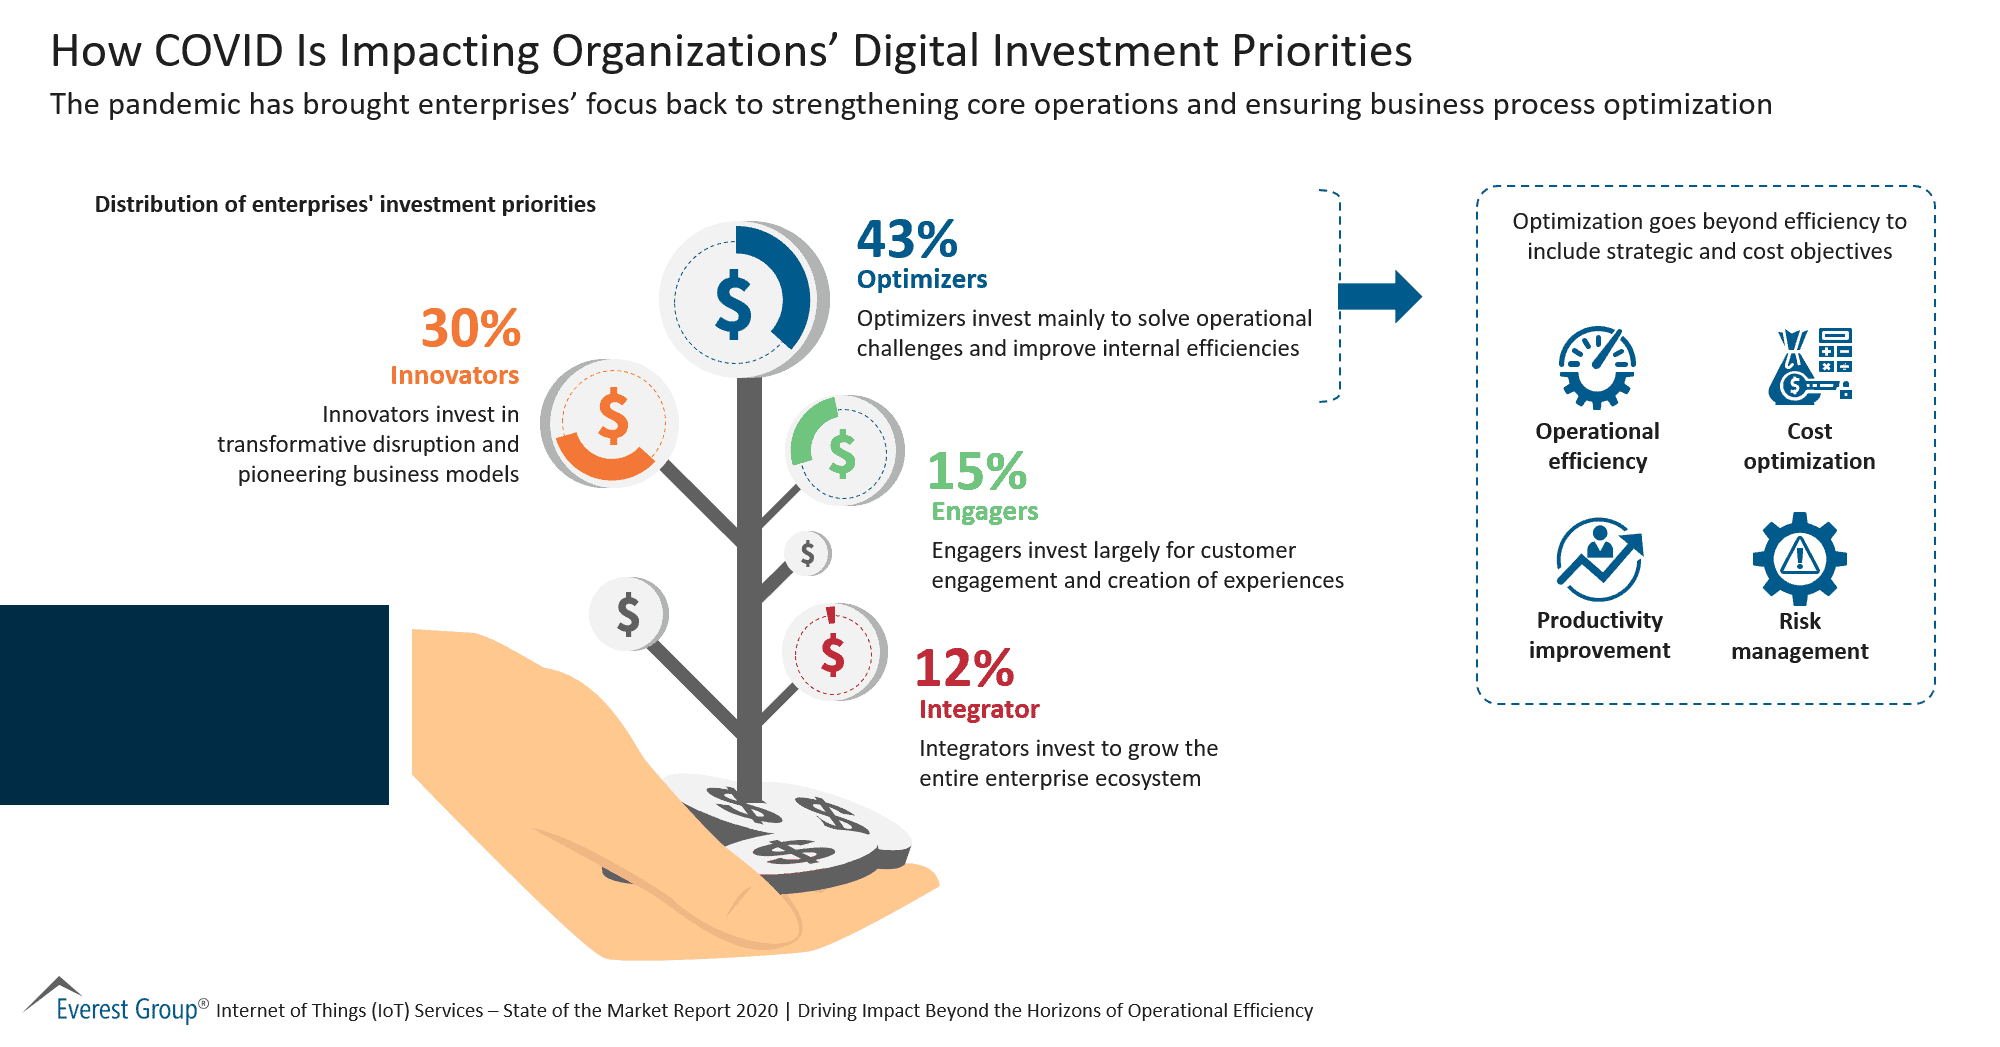 How COVID Is Impacting Organizations Digital Investment Priorities